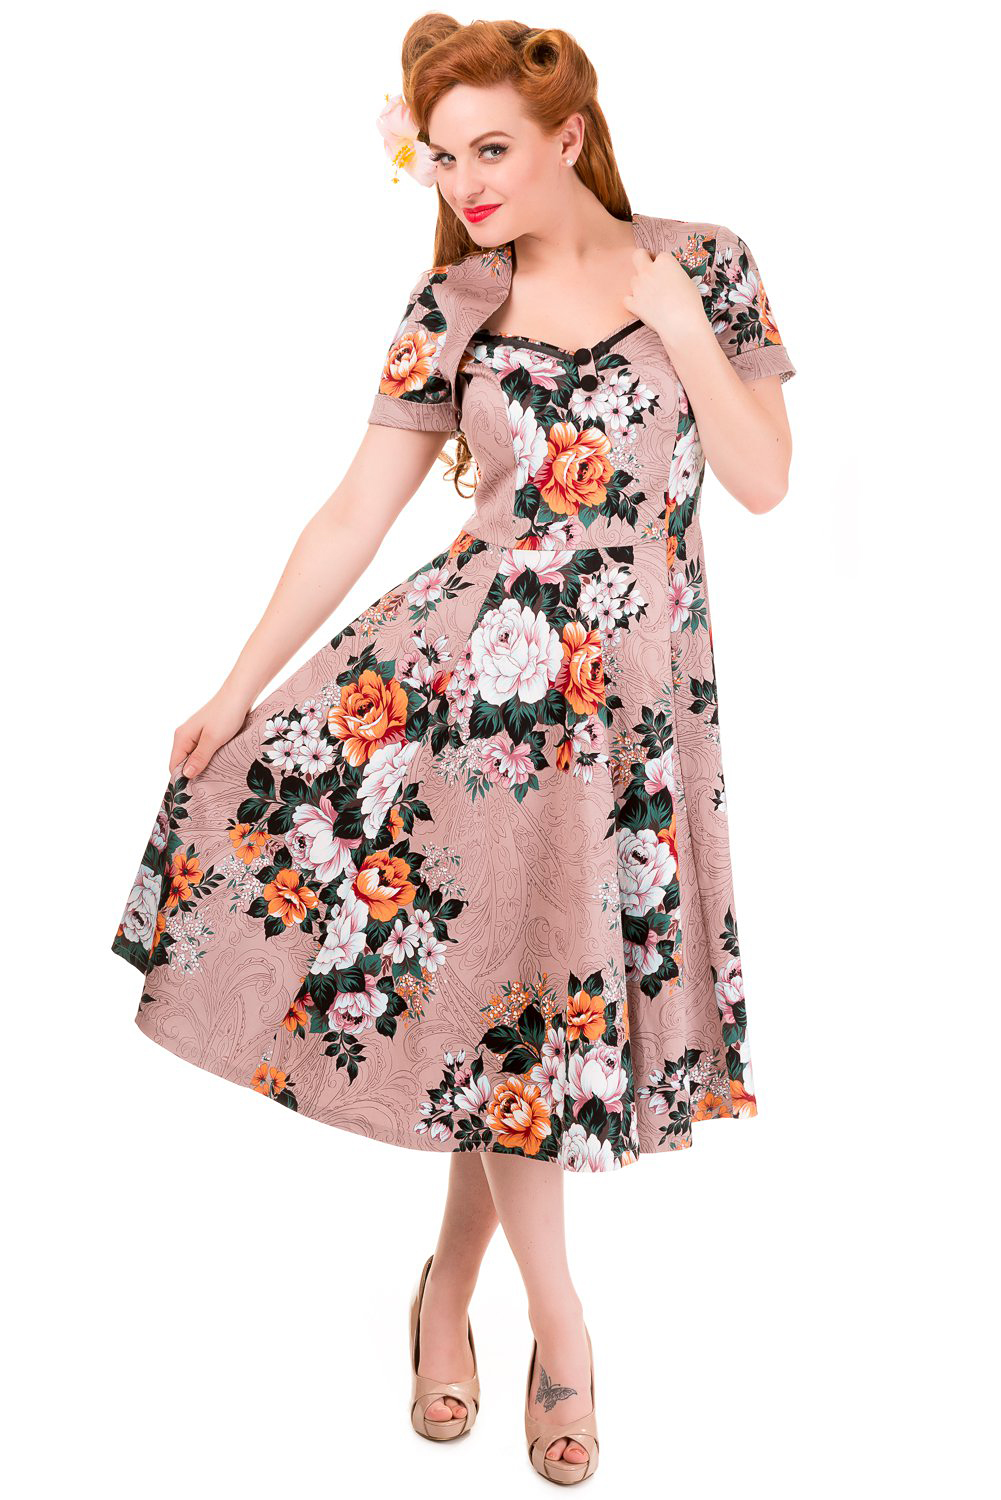 Banned Clothing Gracious Dress